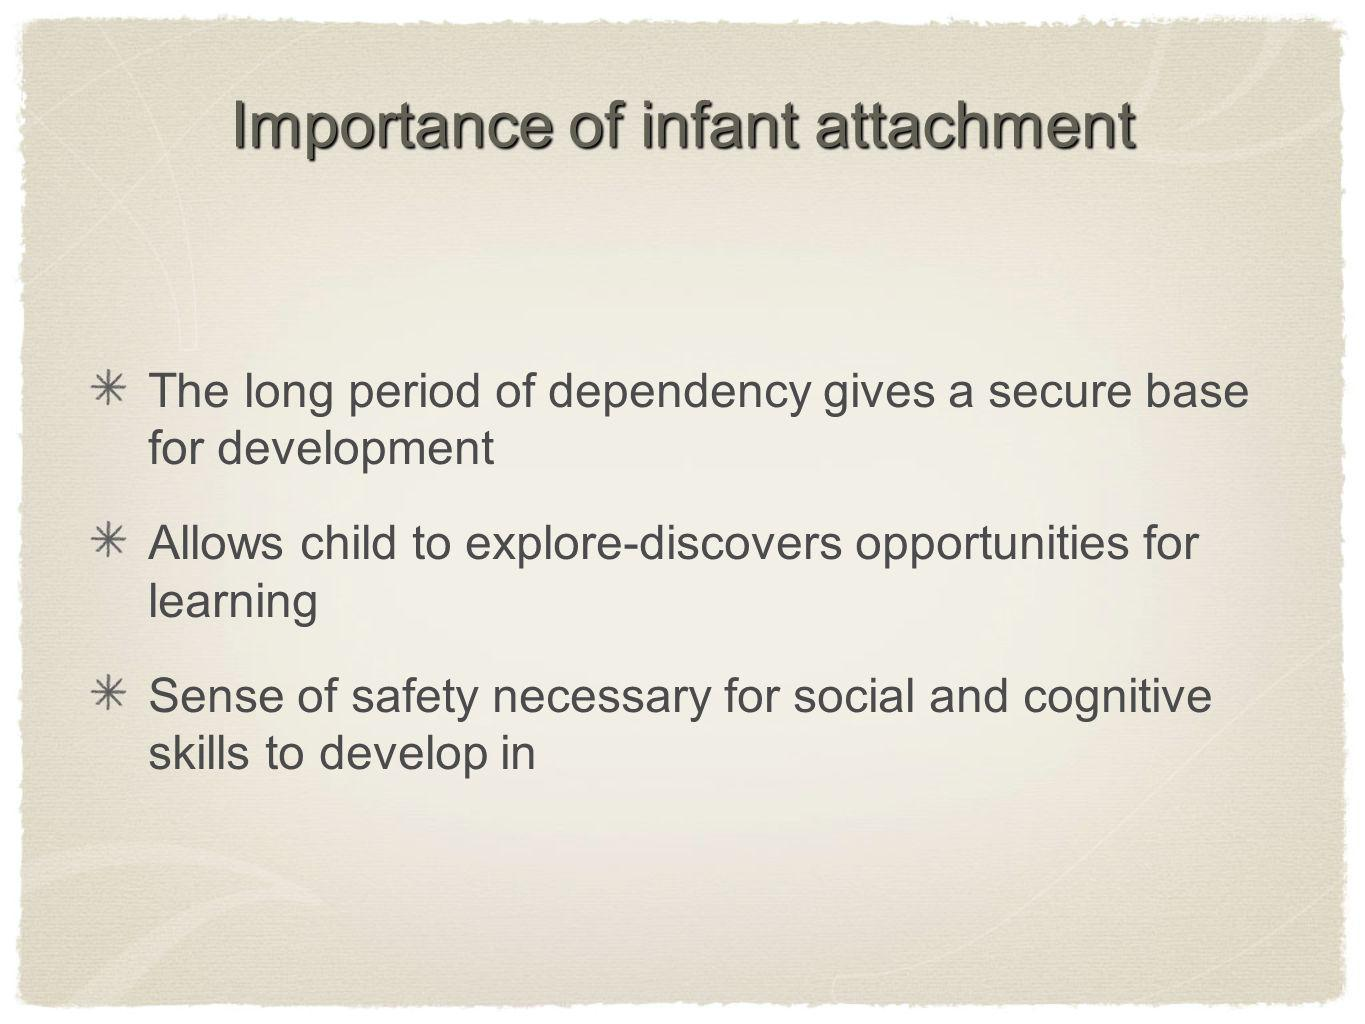 Importance of infant attachment The long period of dependency gives a secure base for development Allows child to explore-discovers opportunities for learning Sense of safety necessary for social and cognitive skills to develop in